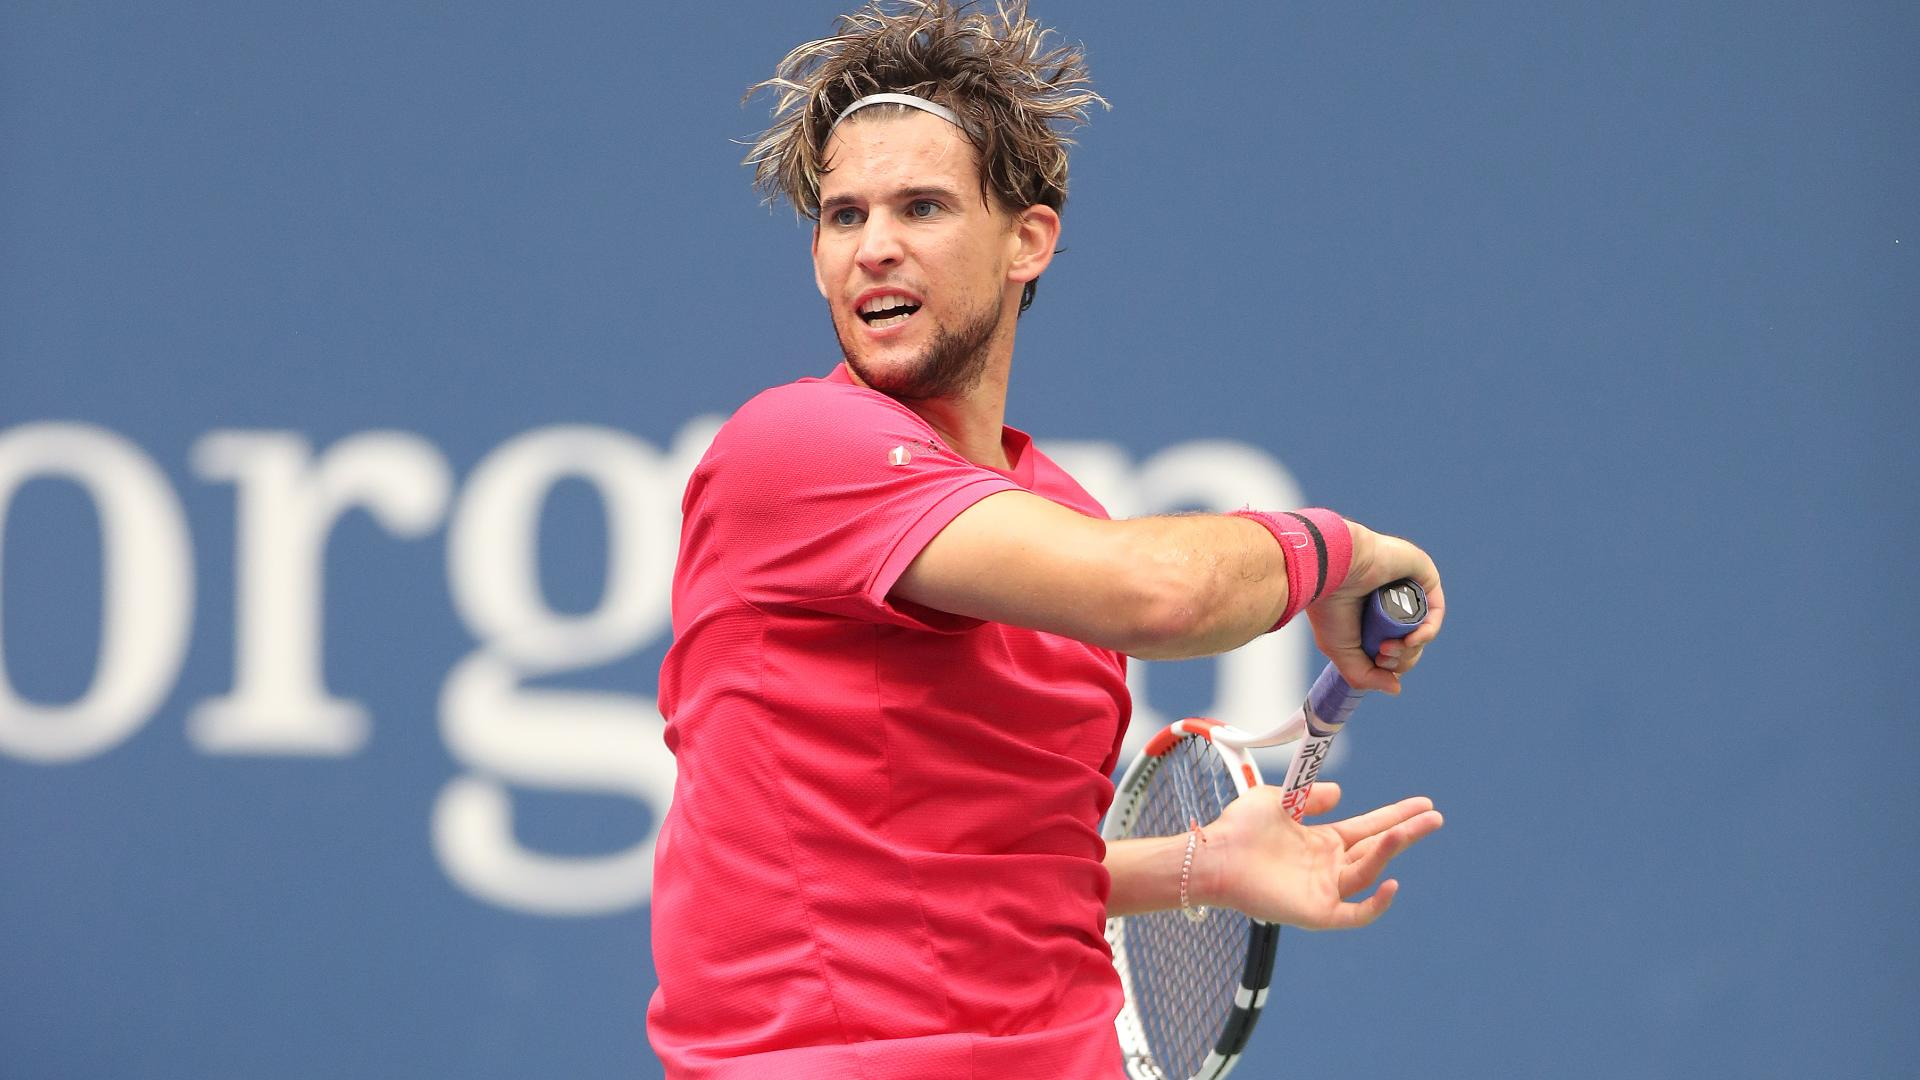 Us Open 2020 Thiem Comes From Behind To Edge Zverev And Make History